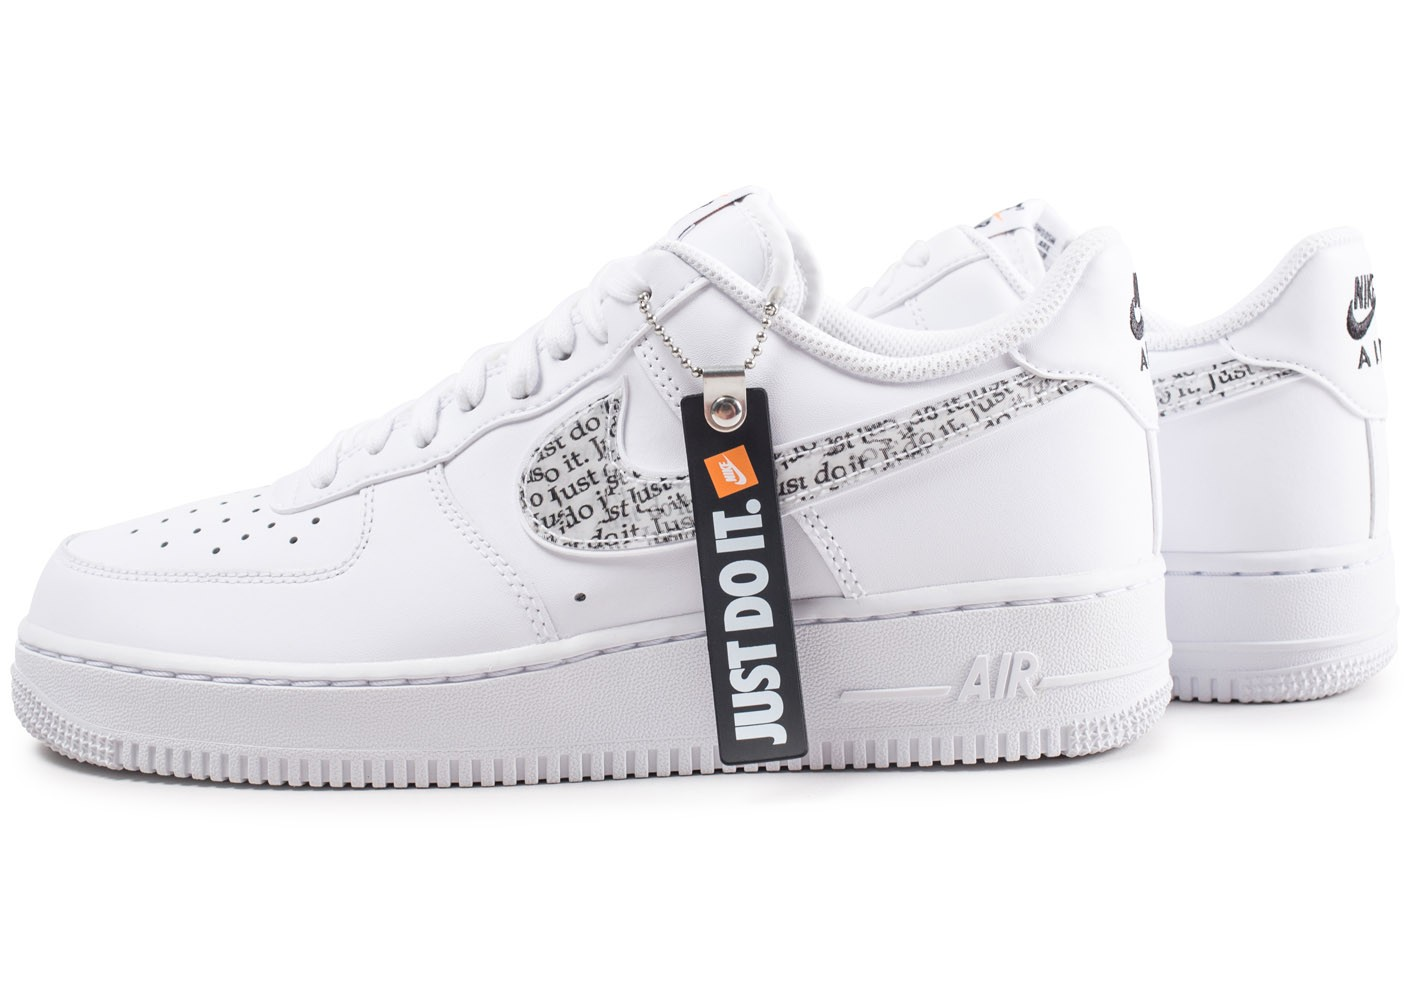 fashion united kingdom casual shoes Nike Air Force 1 '07 LV8 Just Do It blanche - Chaussures ...